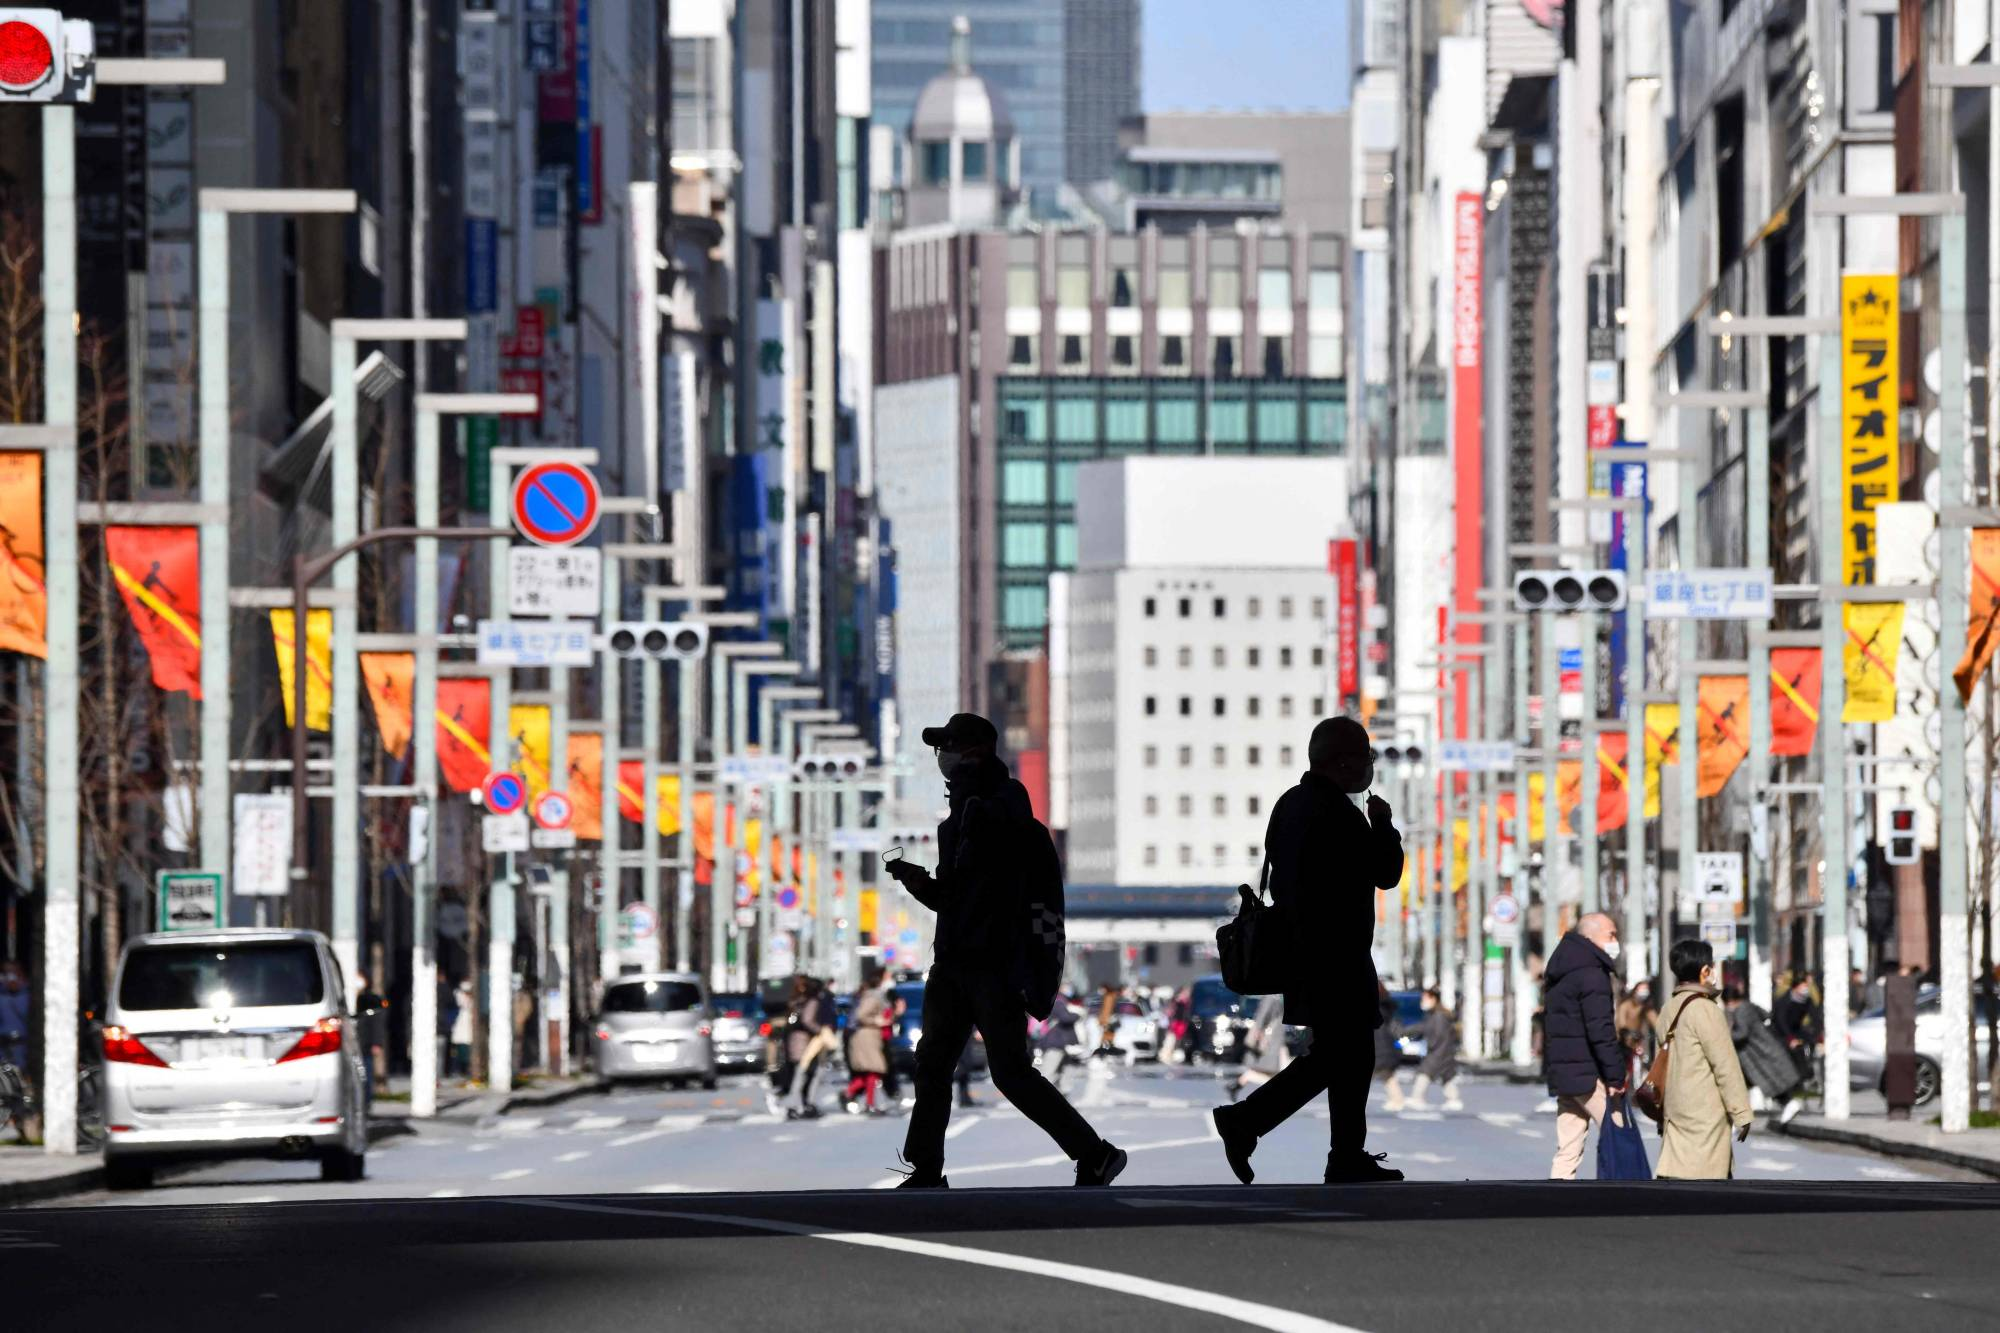 Pedestrians cross a street in Tokyo's Ginza shopping district over the weekend. | AFP-JIJI